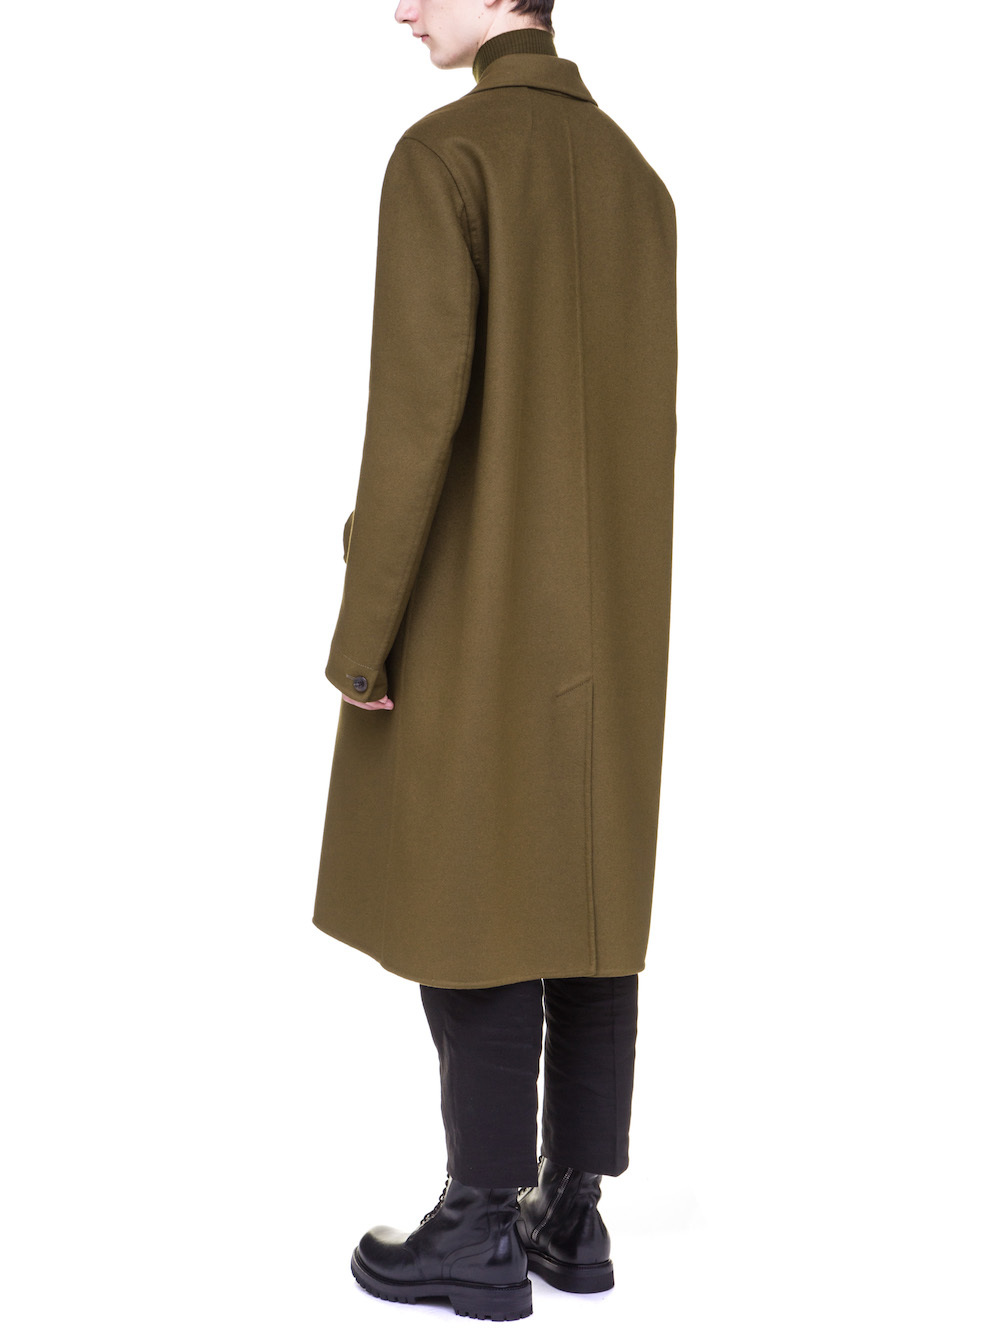 RICK OWENS OFFICER COAT IN DIRTY GREEN